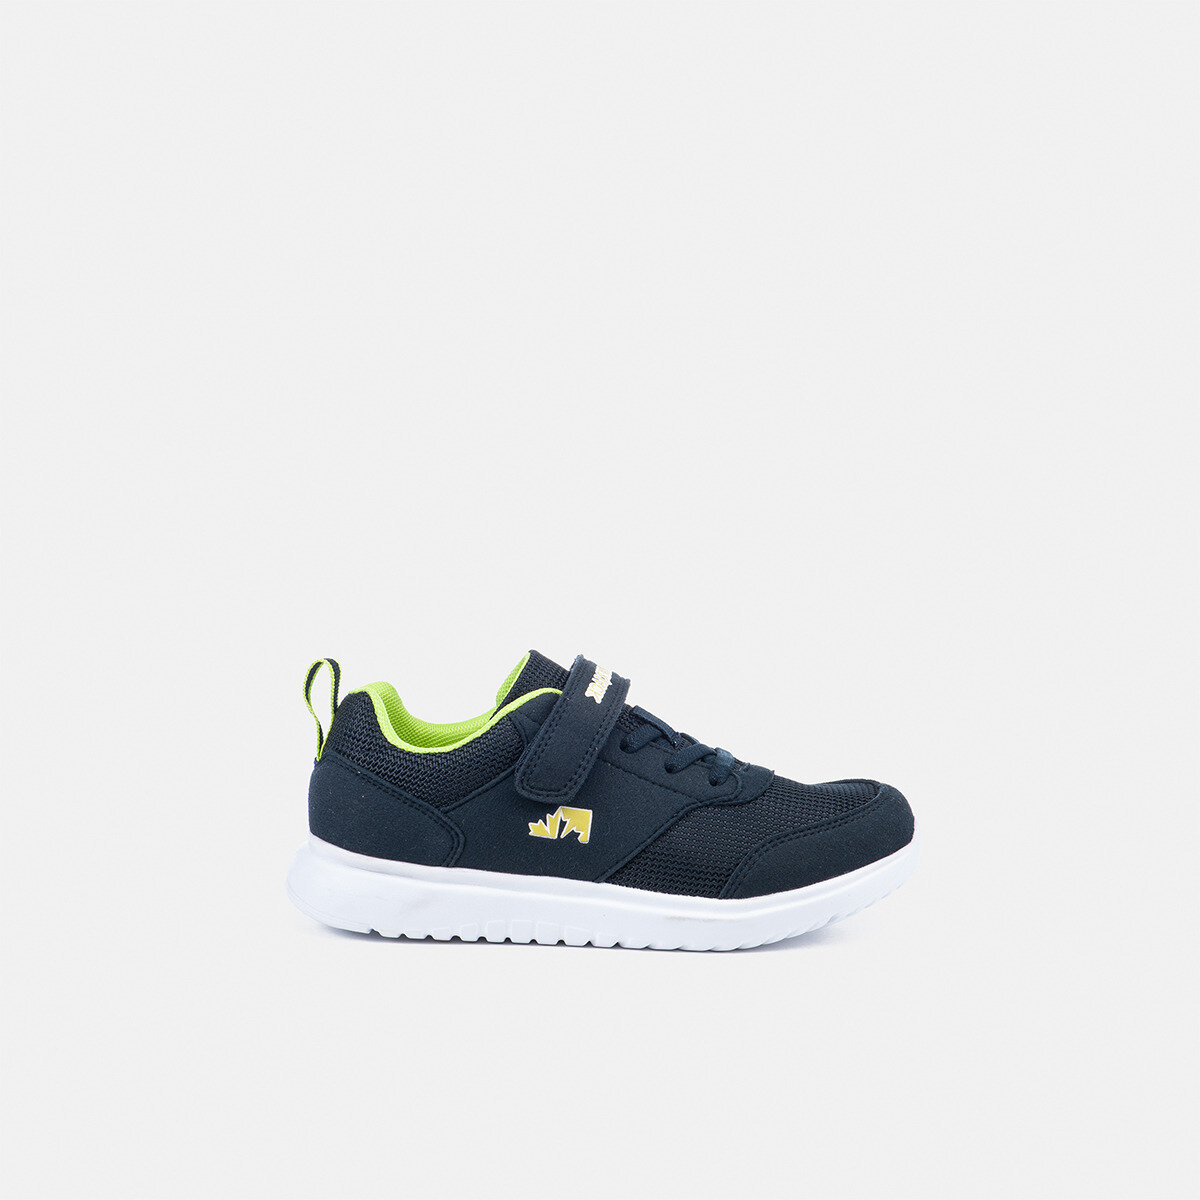 LYNX NAVY BLUE Boy Running shoes